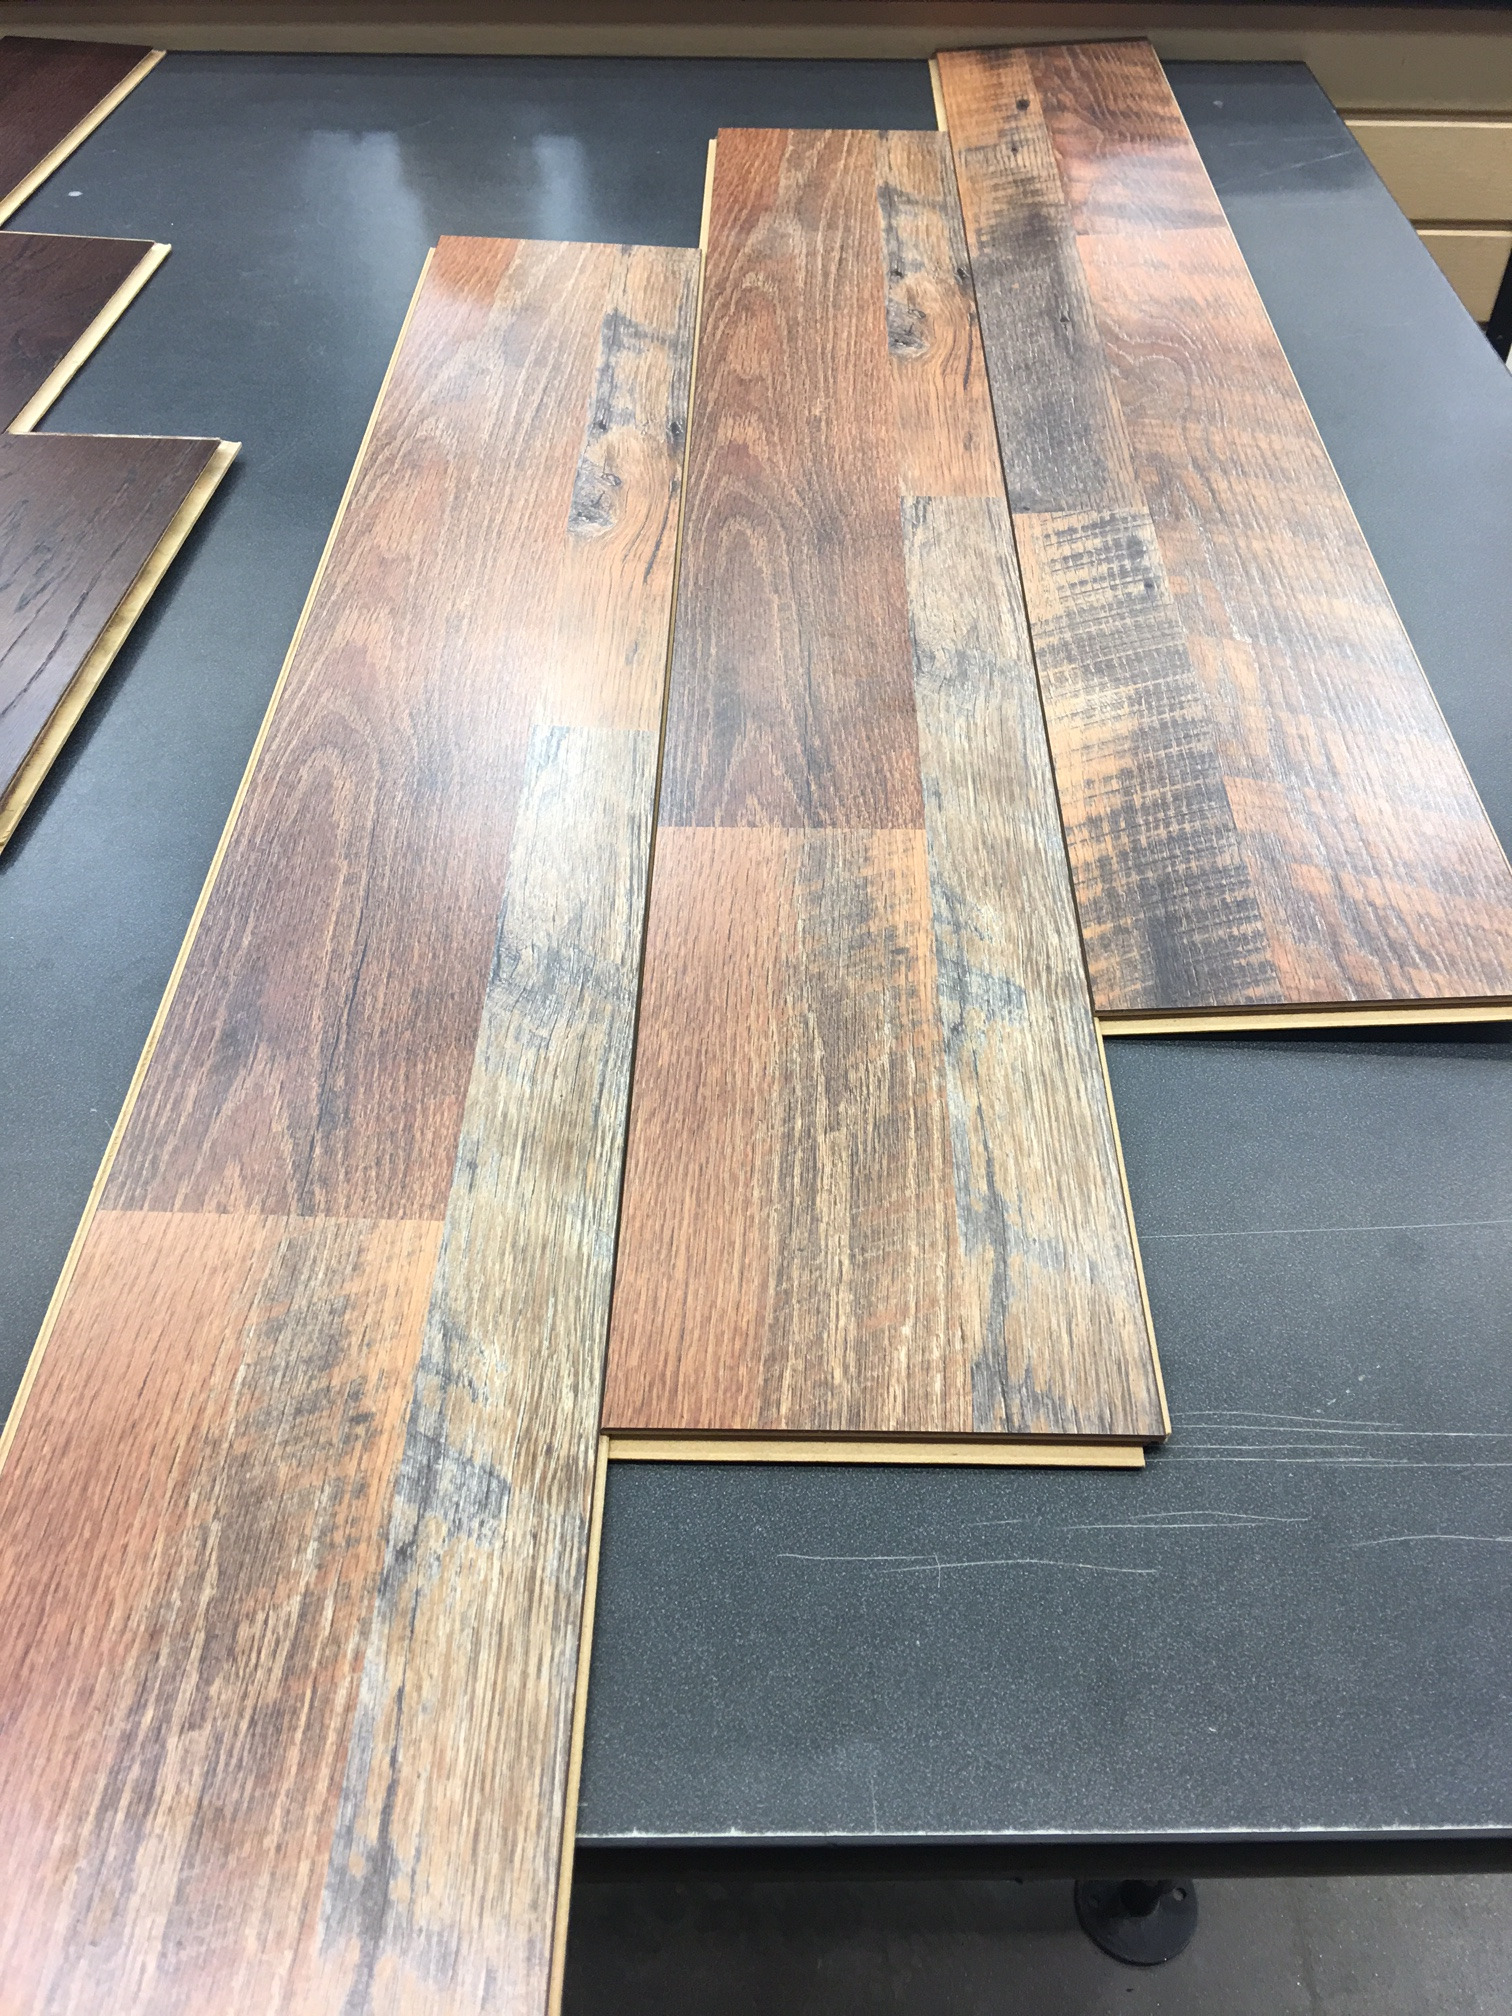 Picture of How to Install Laminate and Hardwood Flooring